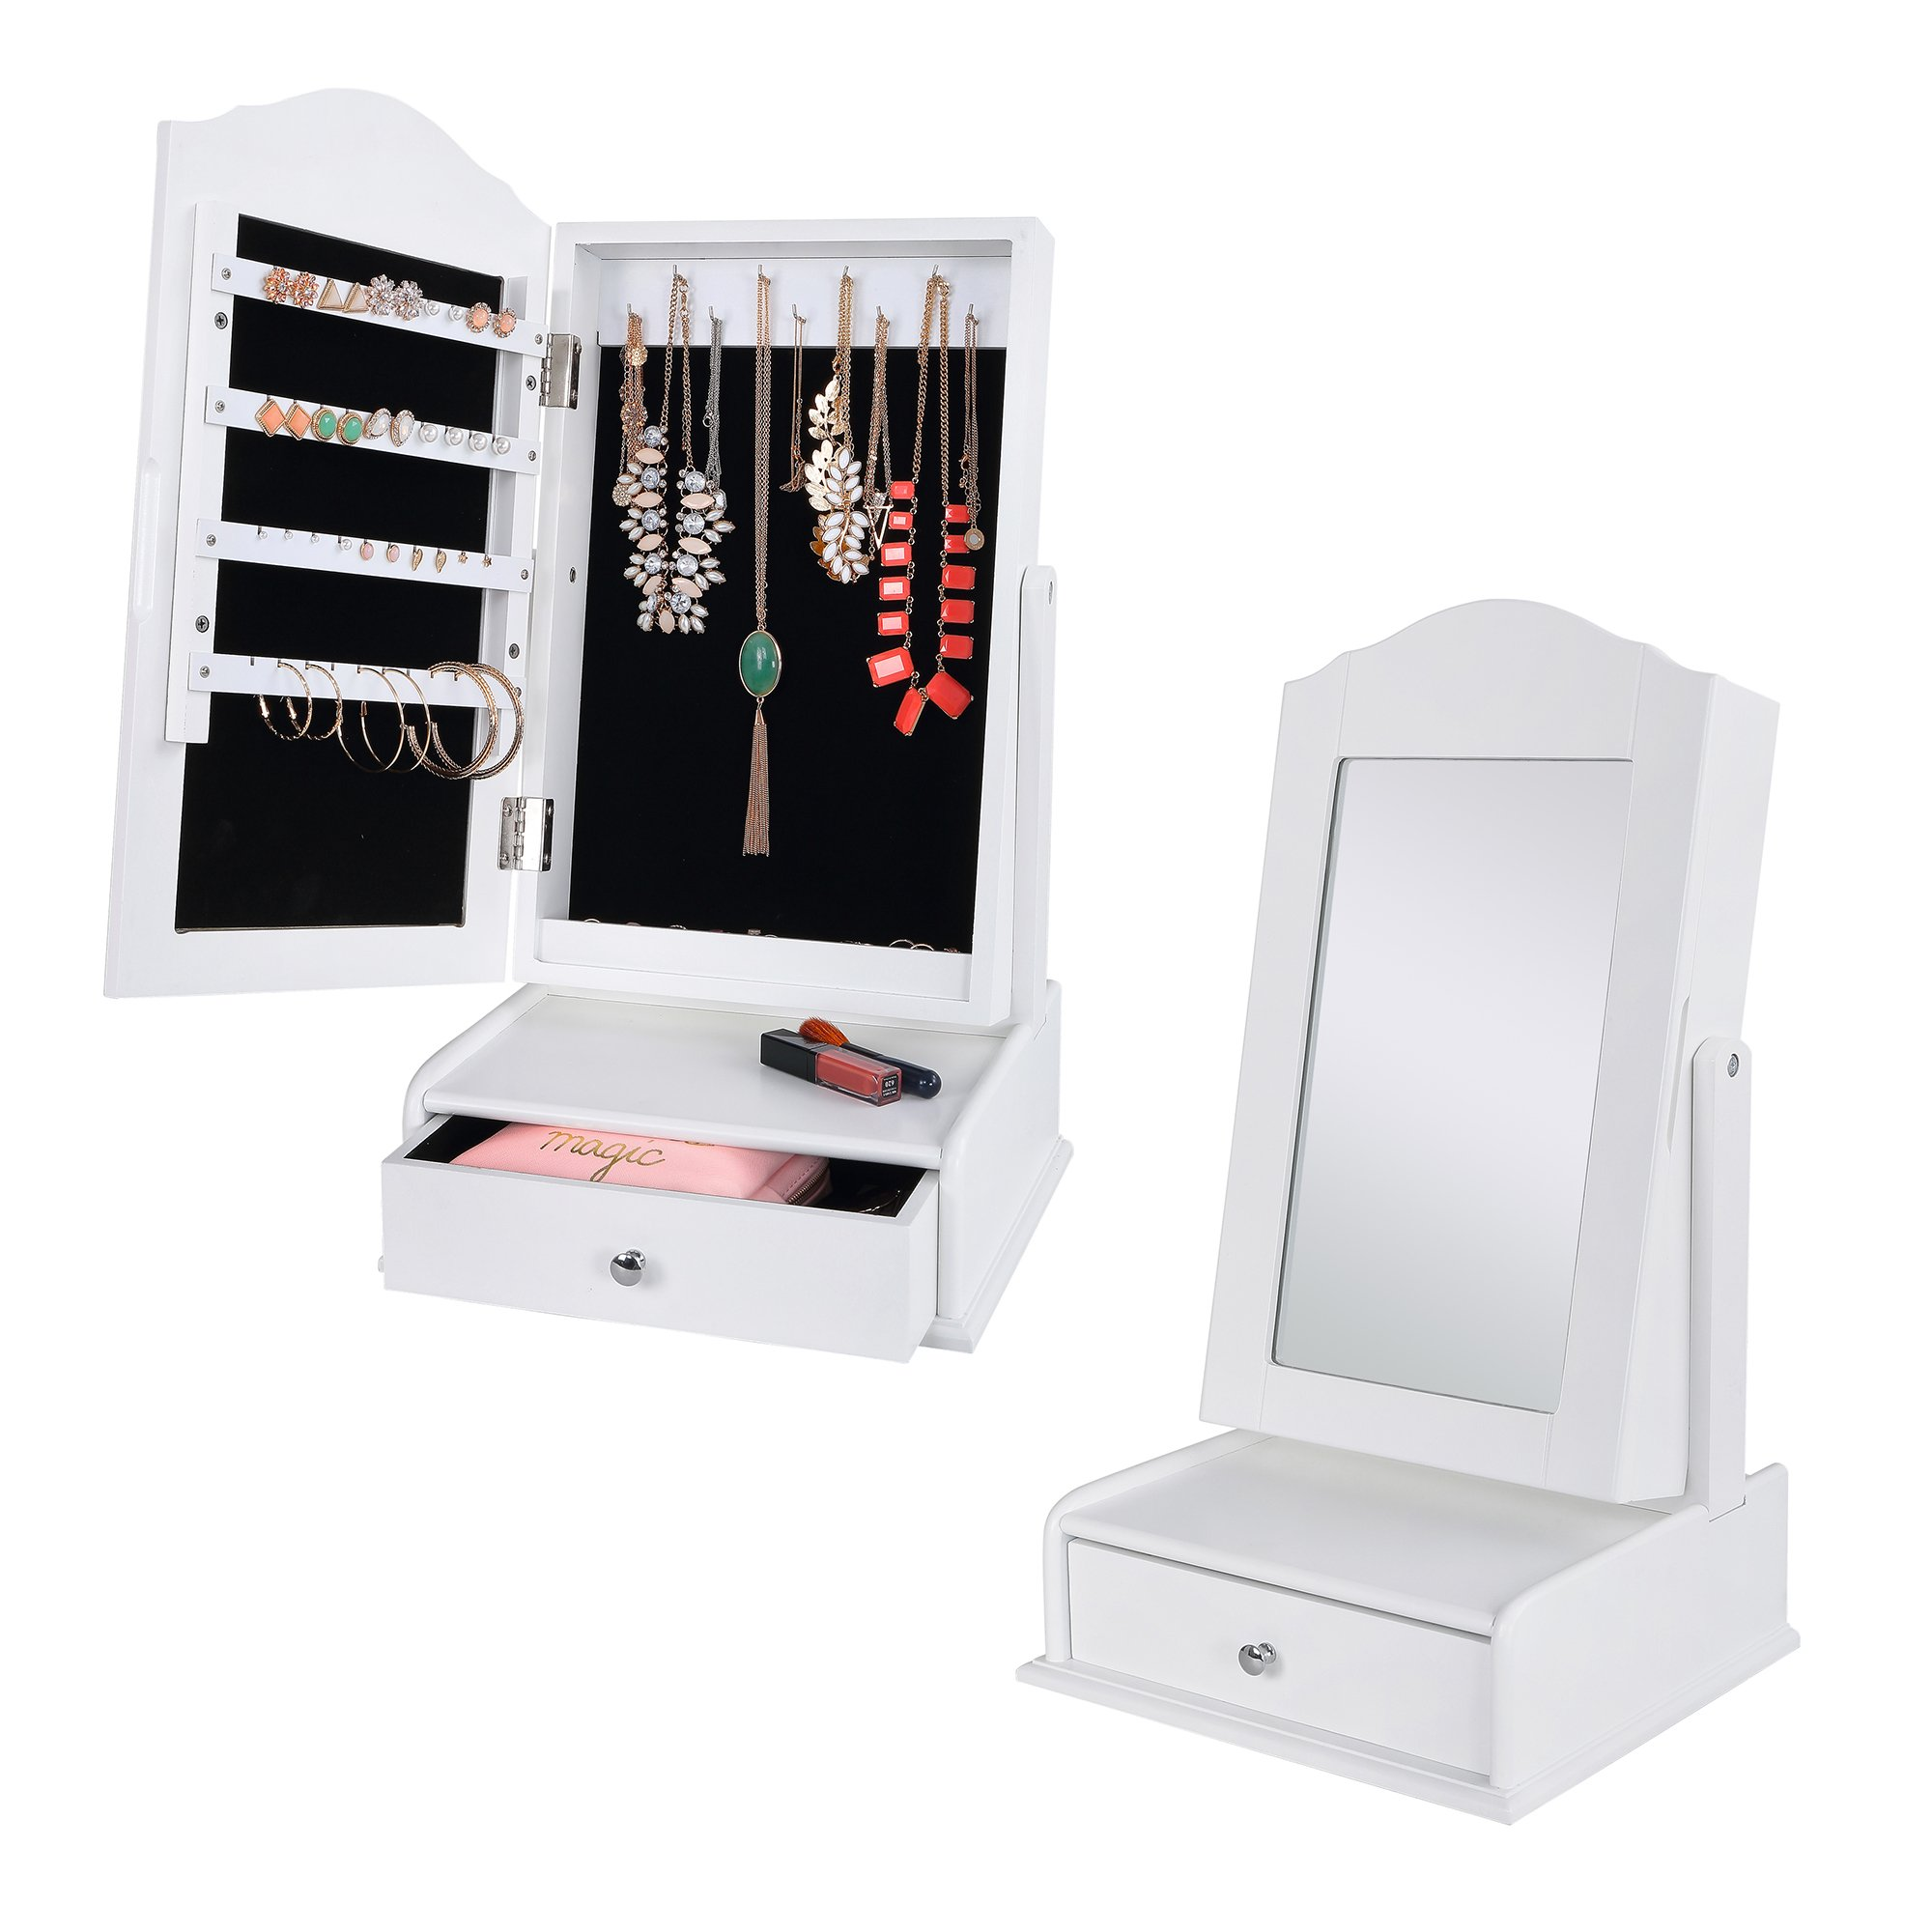 Dependable Direct Jewelry Organizer Cabinet with Mirror - Compact Storage For Your Jewelry Collection – Pull Out Drawer